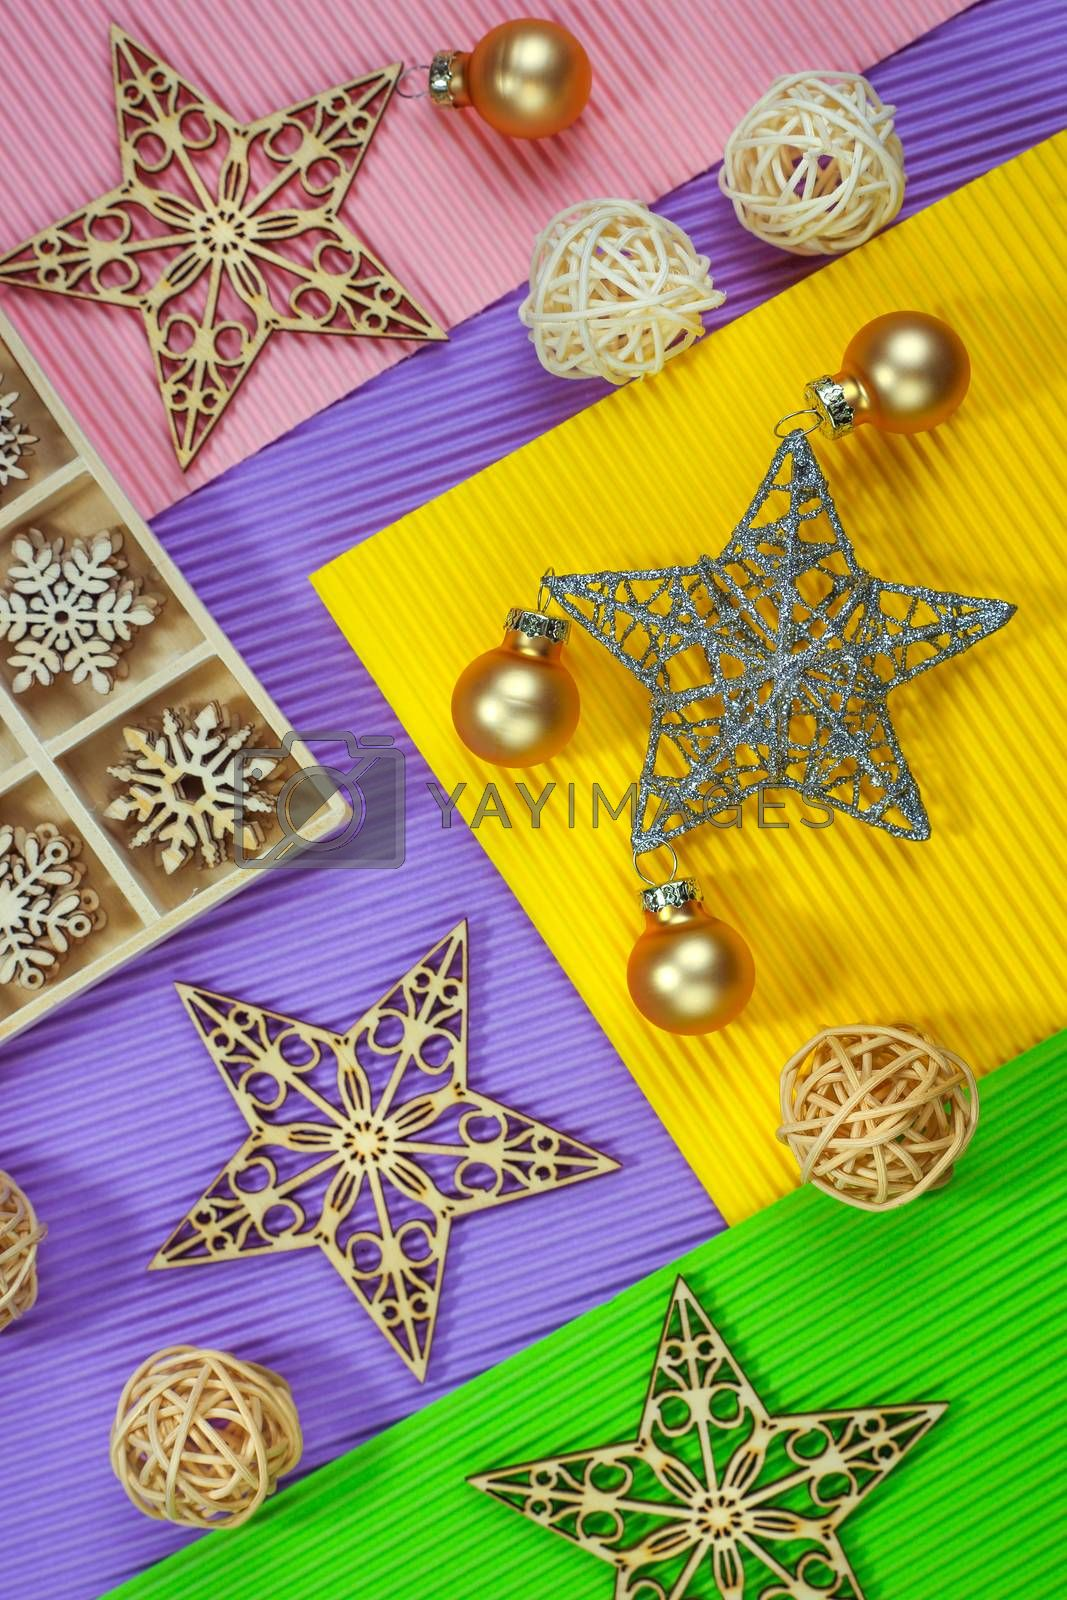 Composition of the Christmas decorations on color paper background. Christmas, winter, New Year concept. Flat lay, top view, copy space.